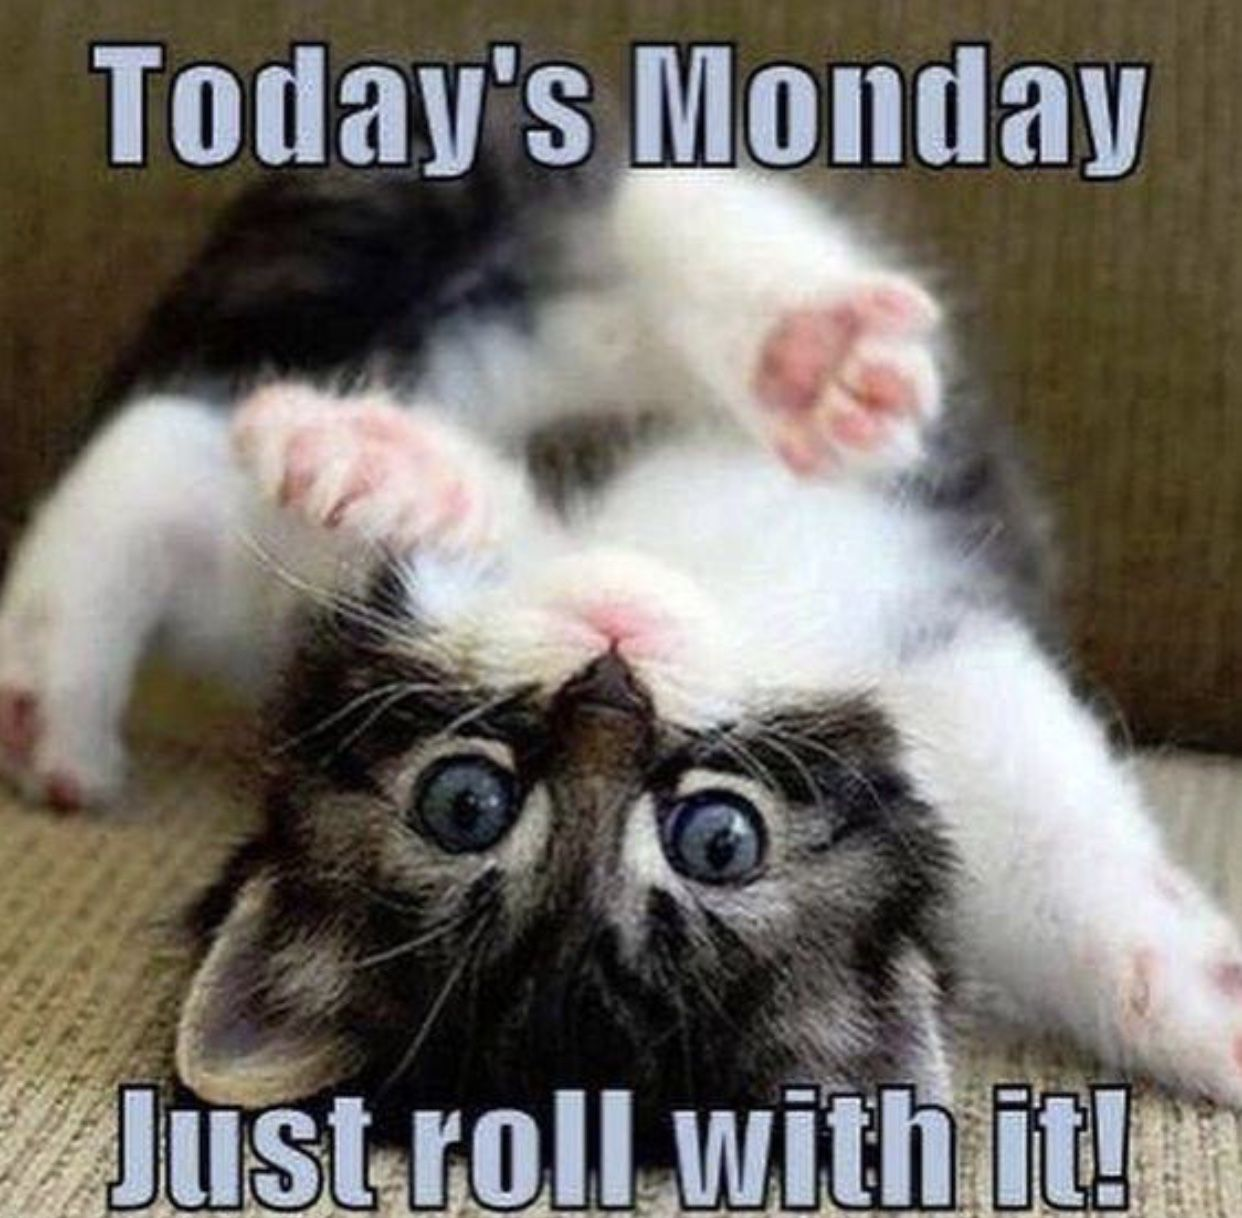 I'll roll with it right back to bed!   Good morning funny, Monday humor, Morning humor